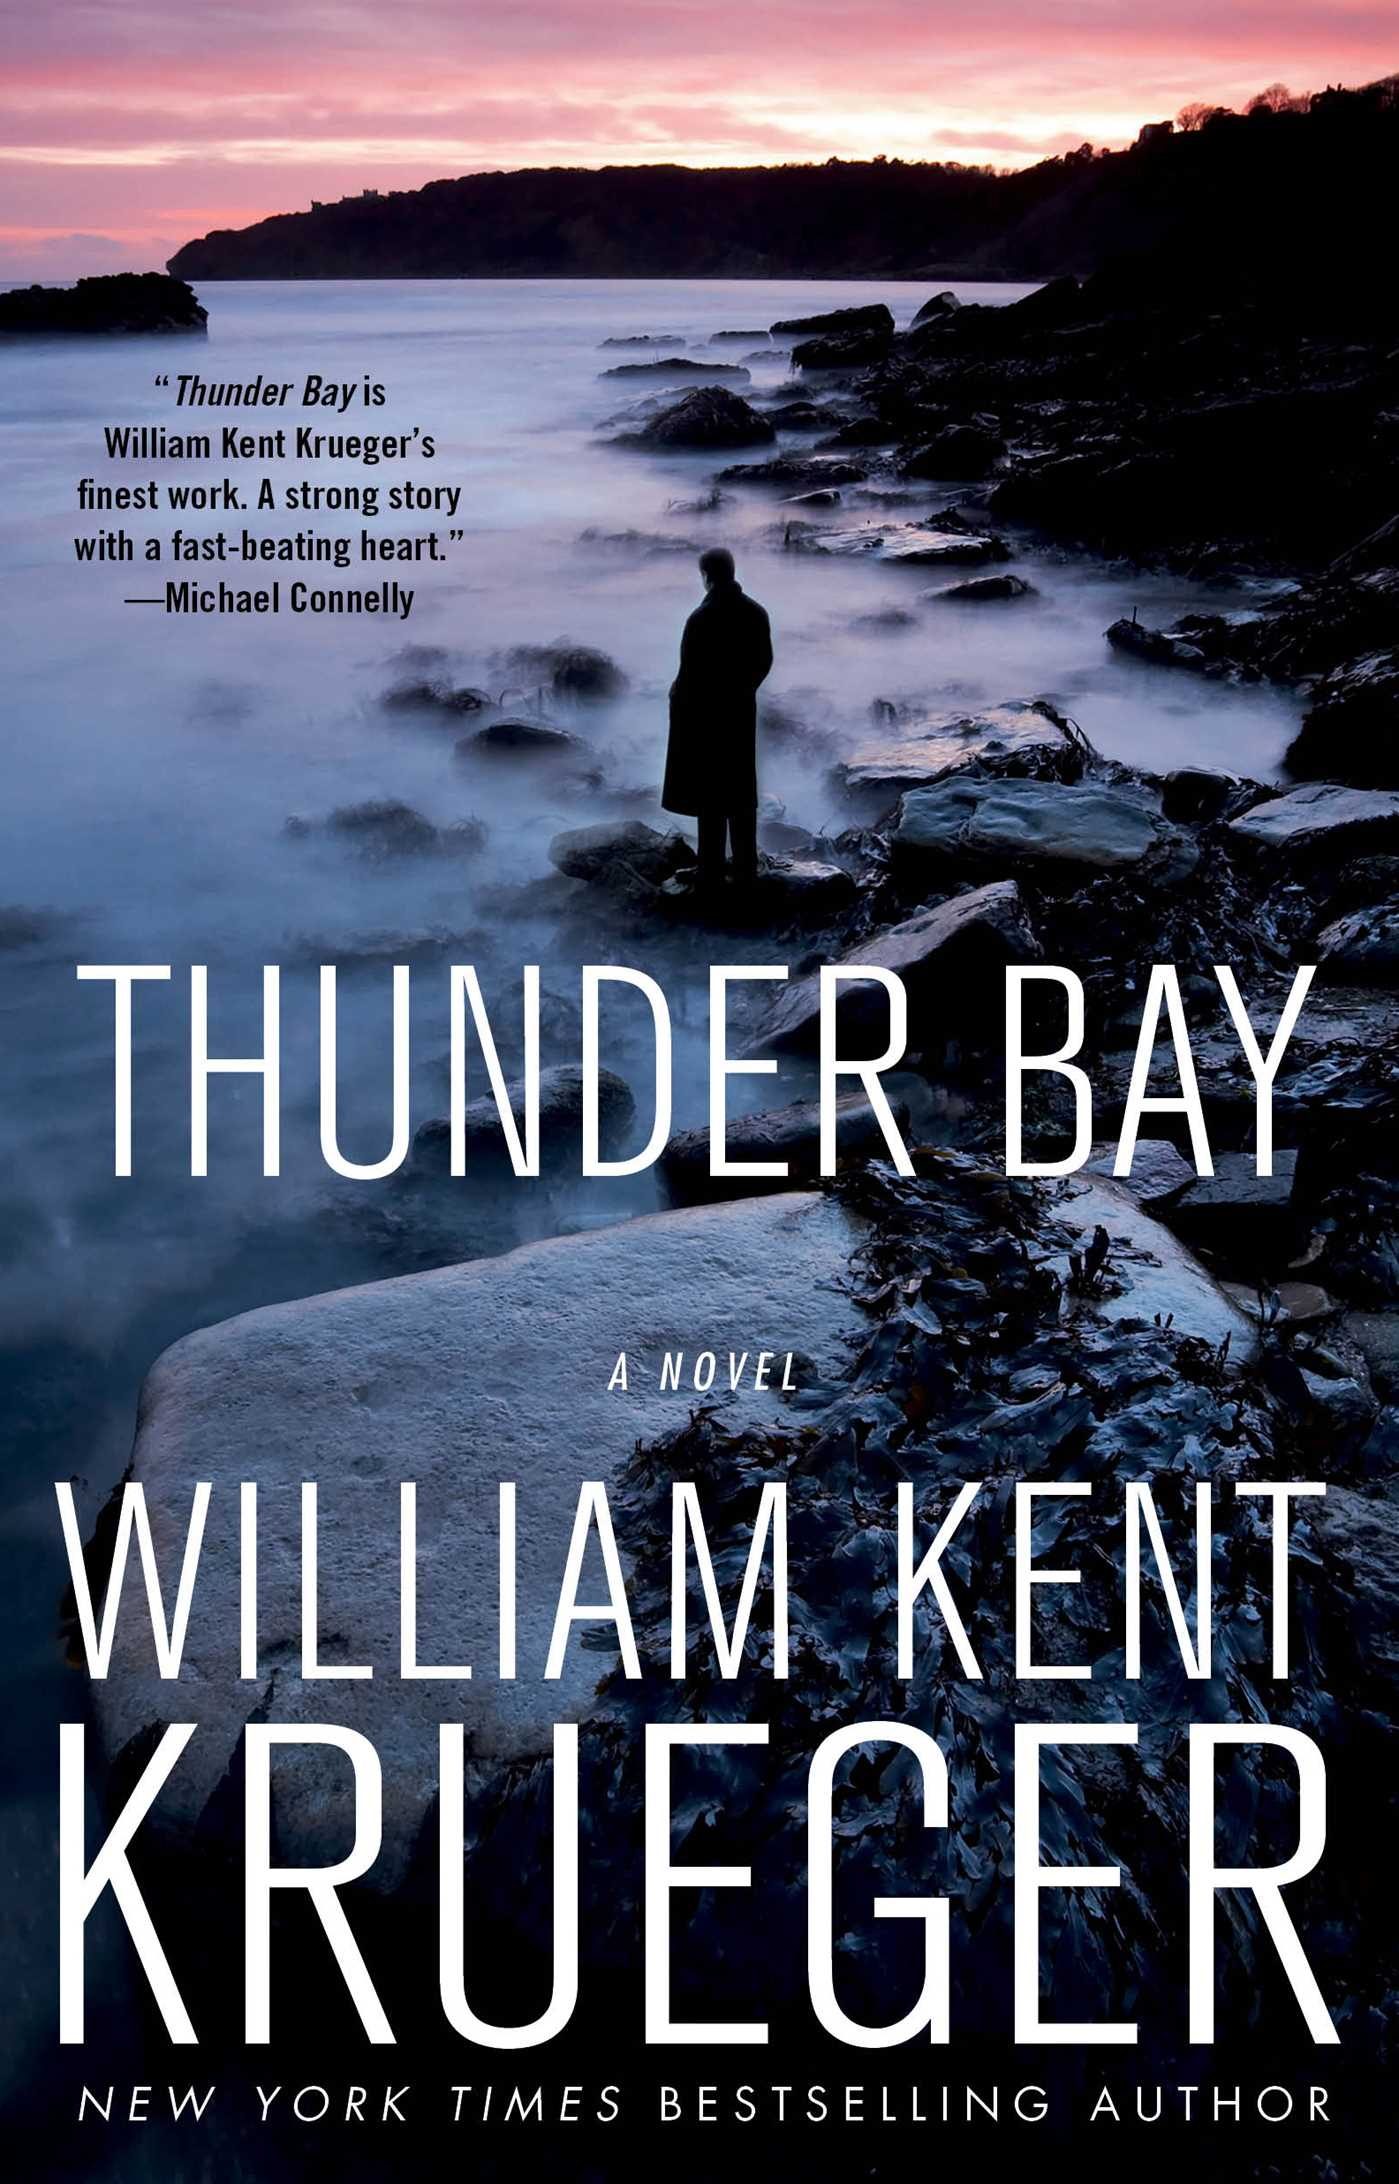 Thunder-bay-9781439157824_hr